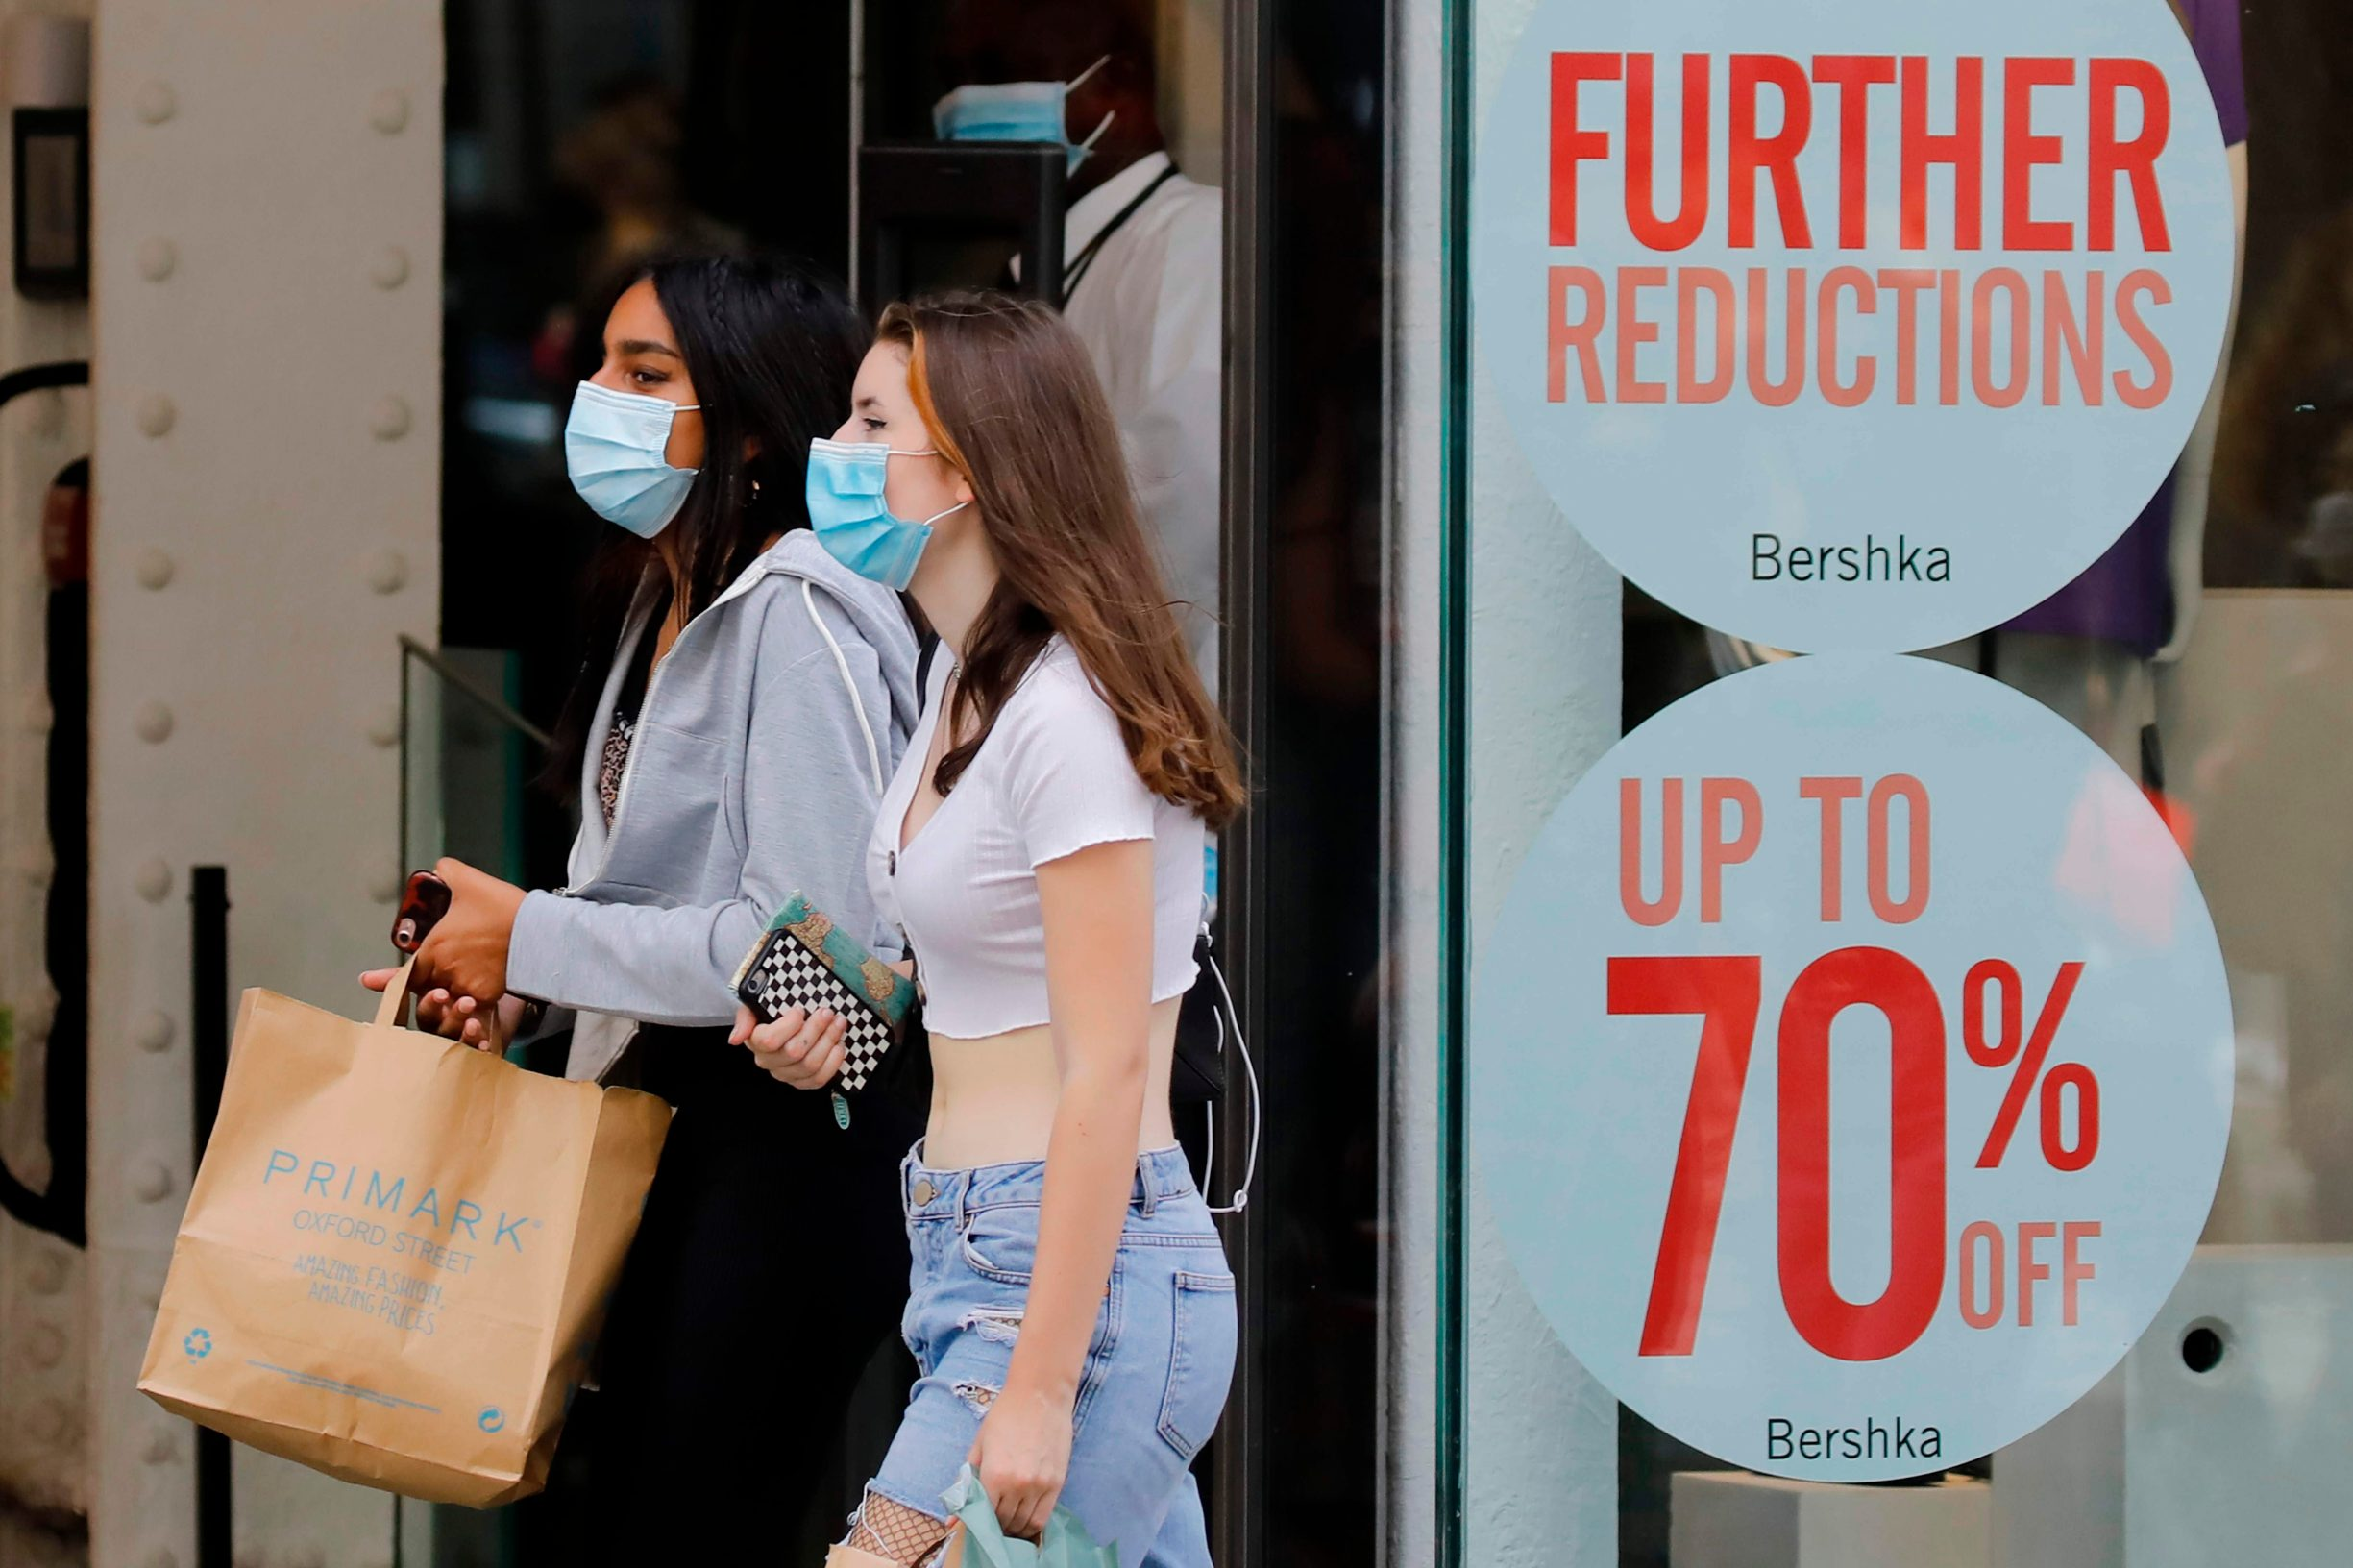 (FILES) In this file photo taken on July 24, 2020 Shoppers wear face masks on Oxford Street om London on July 24, 2020, after wearing facemasks in shops and supermarkets became compulsory in England as a measure to combat the spread of the novel coronavirus. - Britain's economy contracted by a record 20.4 percent in the second quarter with the country in lockdown over the coronavirus pandemic, official data showed on August 12, 2020. (Photo by Tolga AKMEN / AFP)